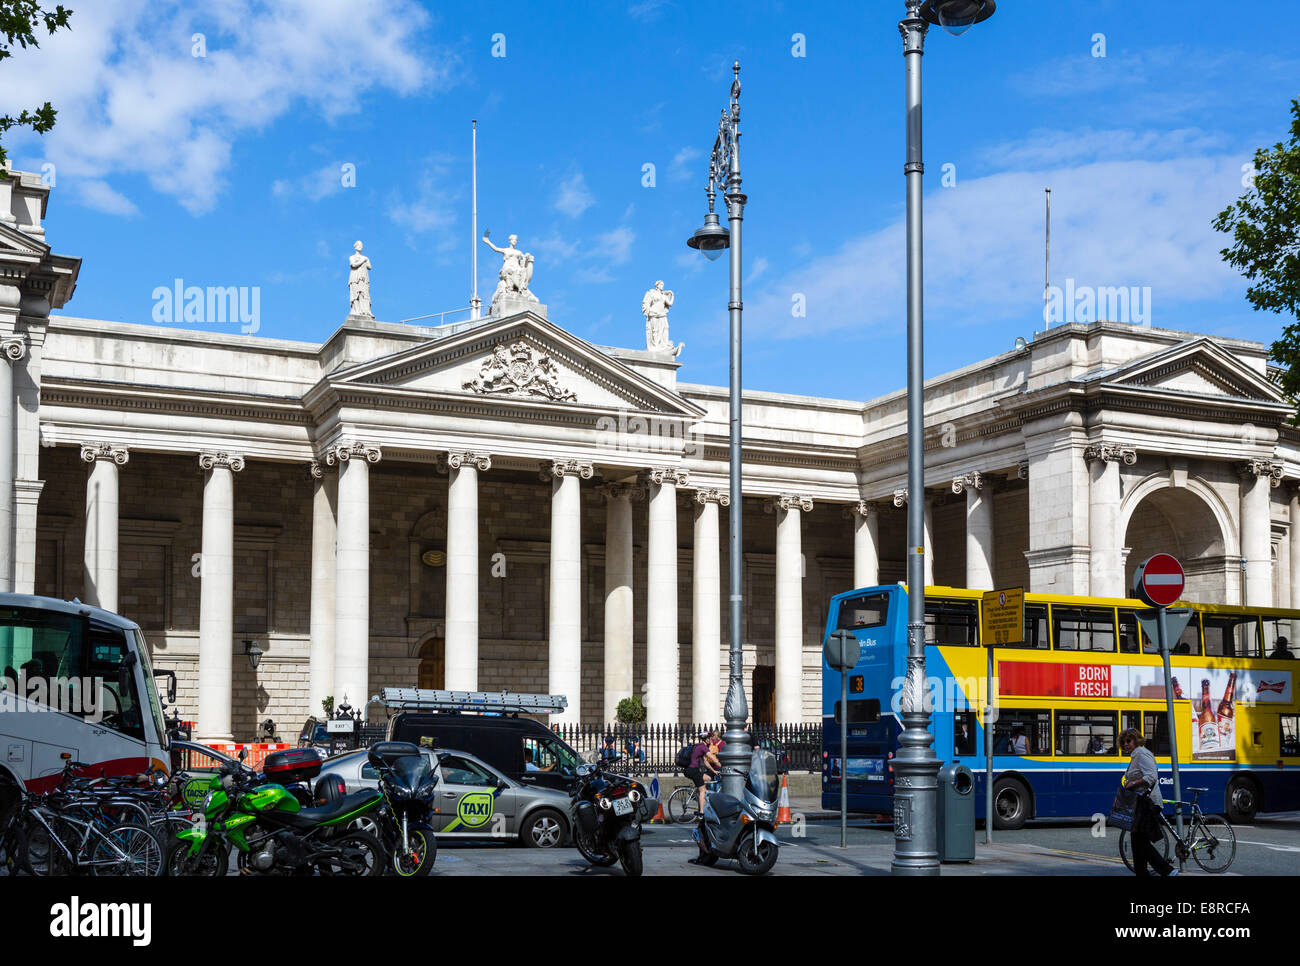 Headquarters of the Bank of Ireland on College Green, Dublin, Republic of Ireland - Stock Image